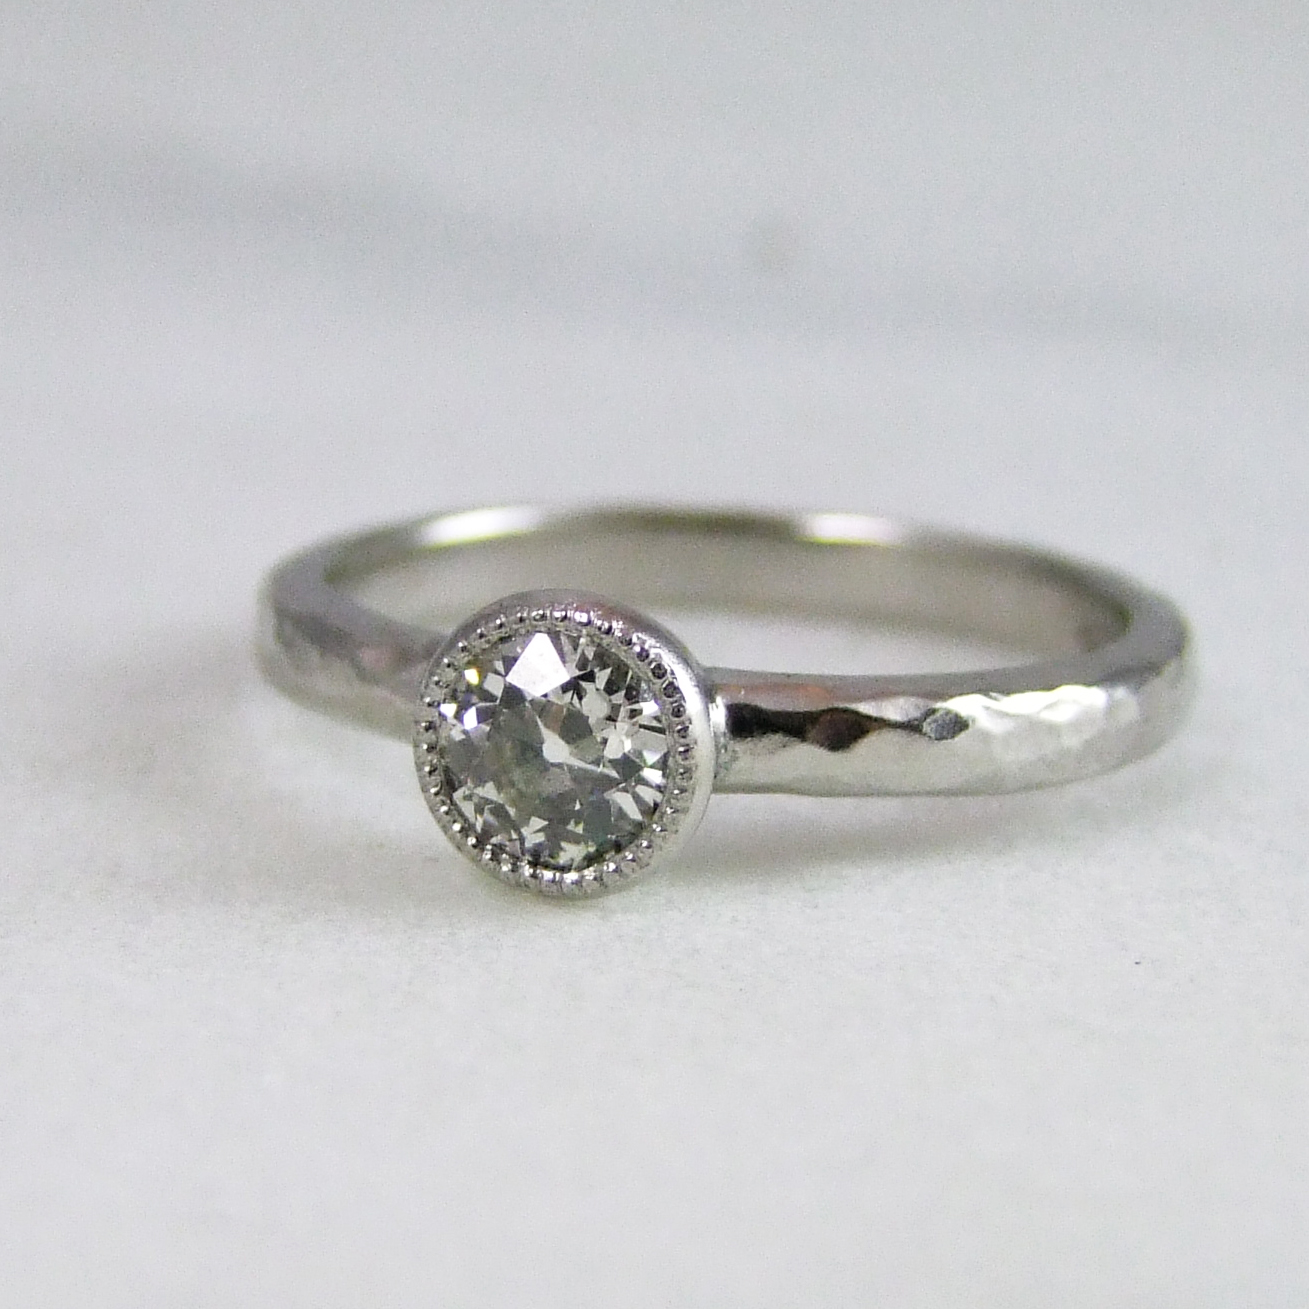 Handmade Old Mine Cut Diamond And Platinum Millegrain Ring